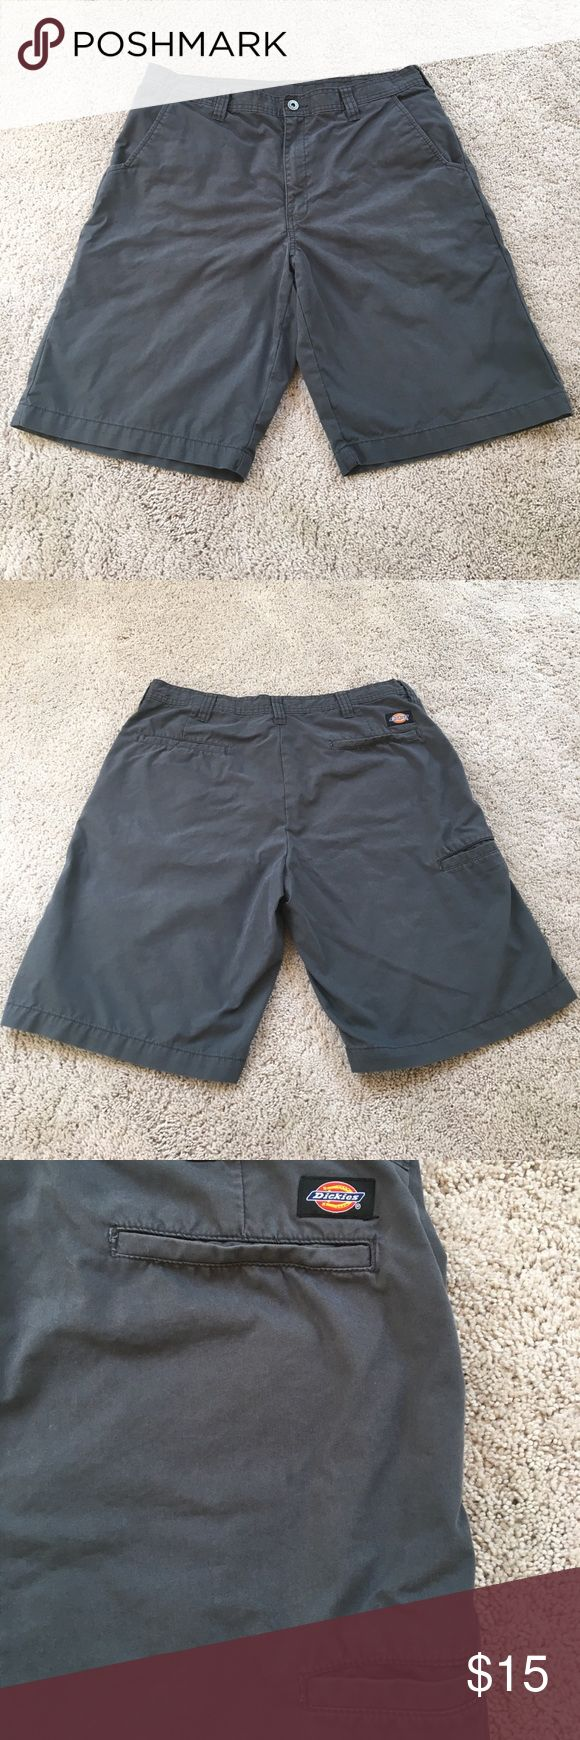 """Dickies dark gray shorts 34 waist 10"""" inseam Dickies dark gray shorts 34 waist 11"""" inseam. Phone pocket on right side, Velcro closures on back pockets. In great shape. 70% cotton 30% nylon. Dickies Shorts Flat Front"""